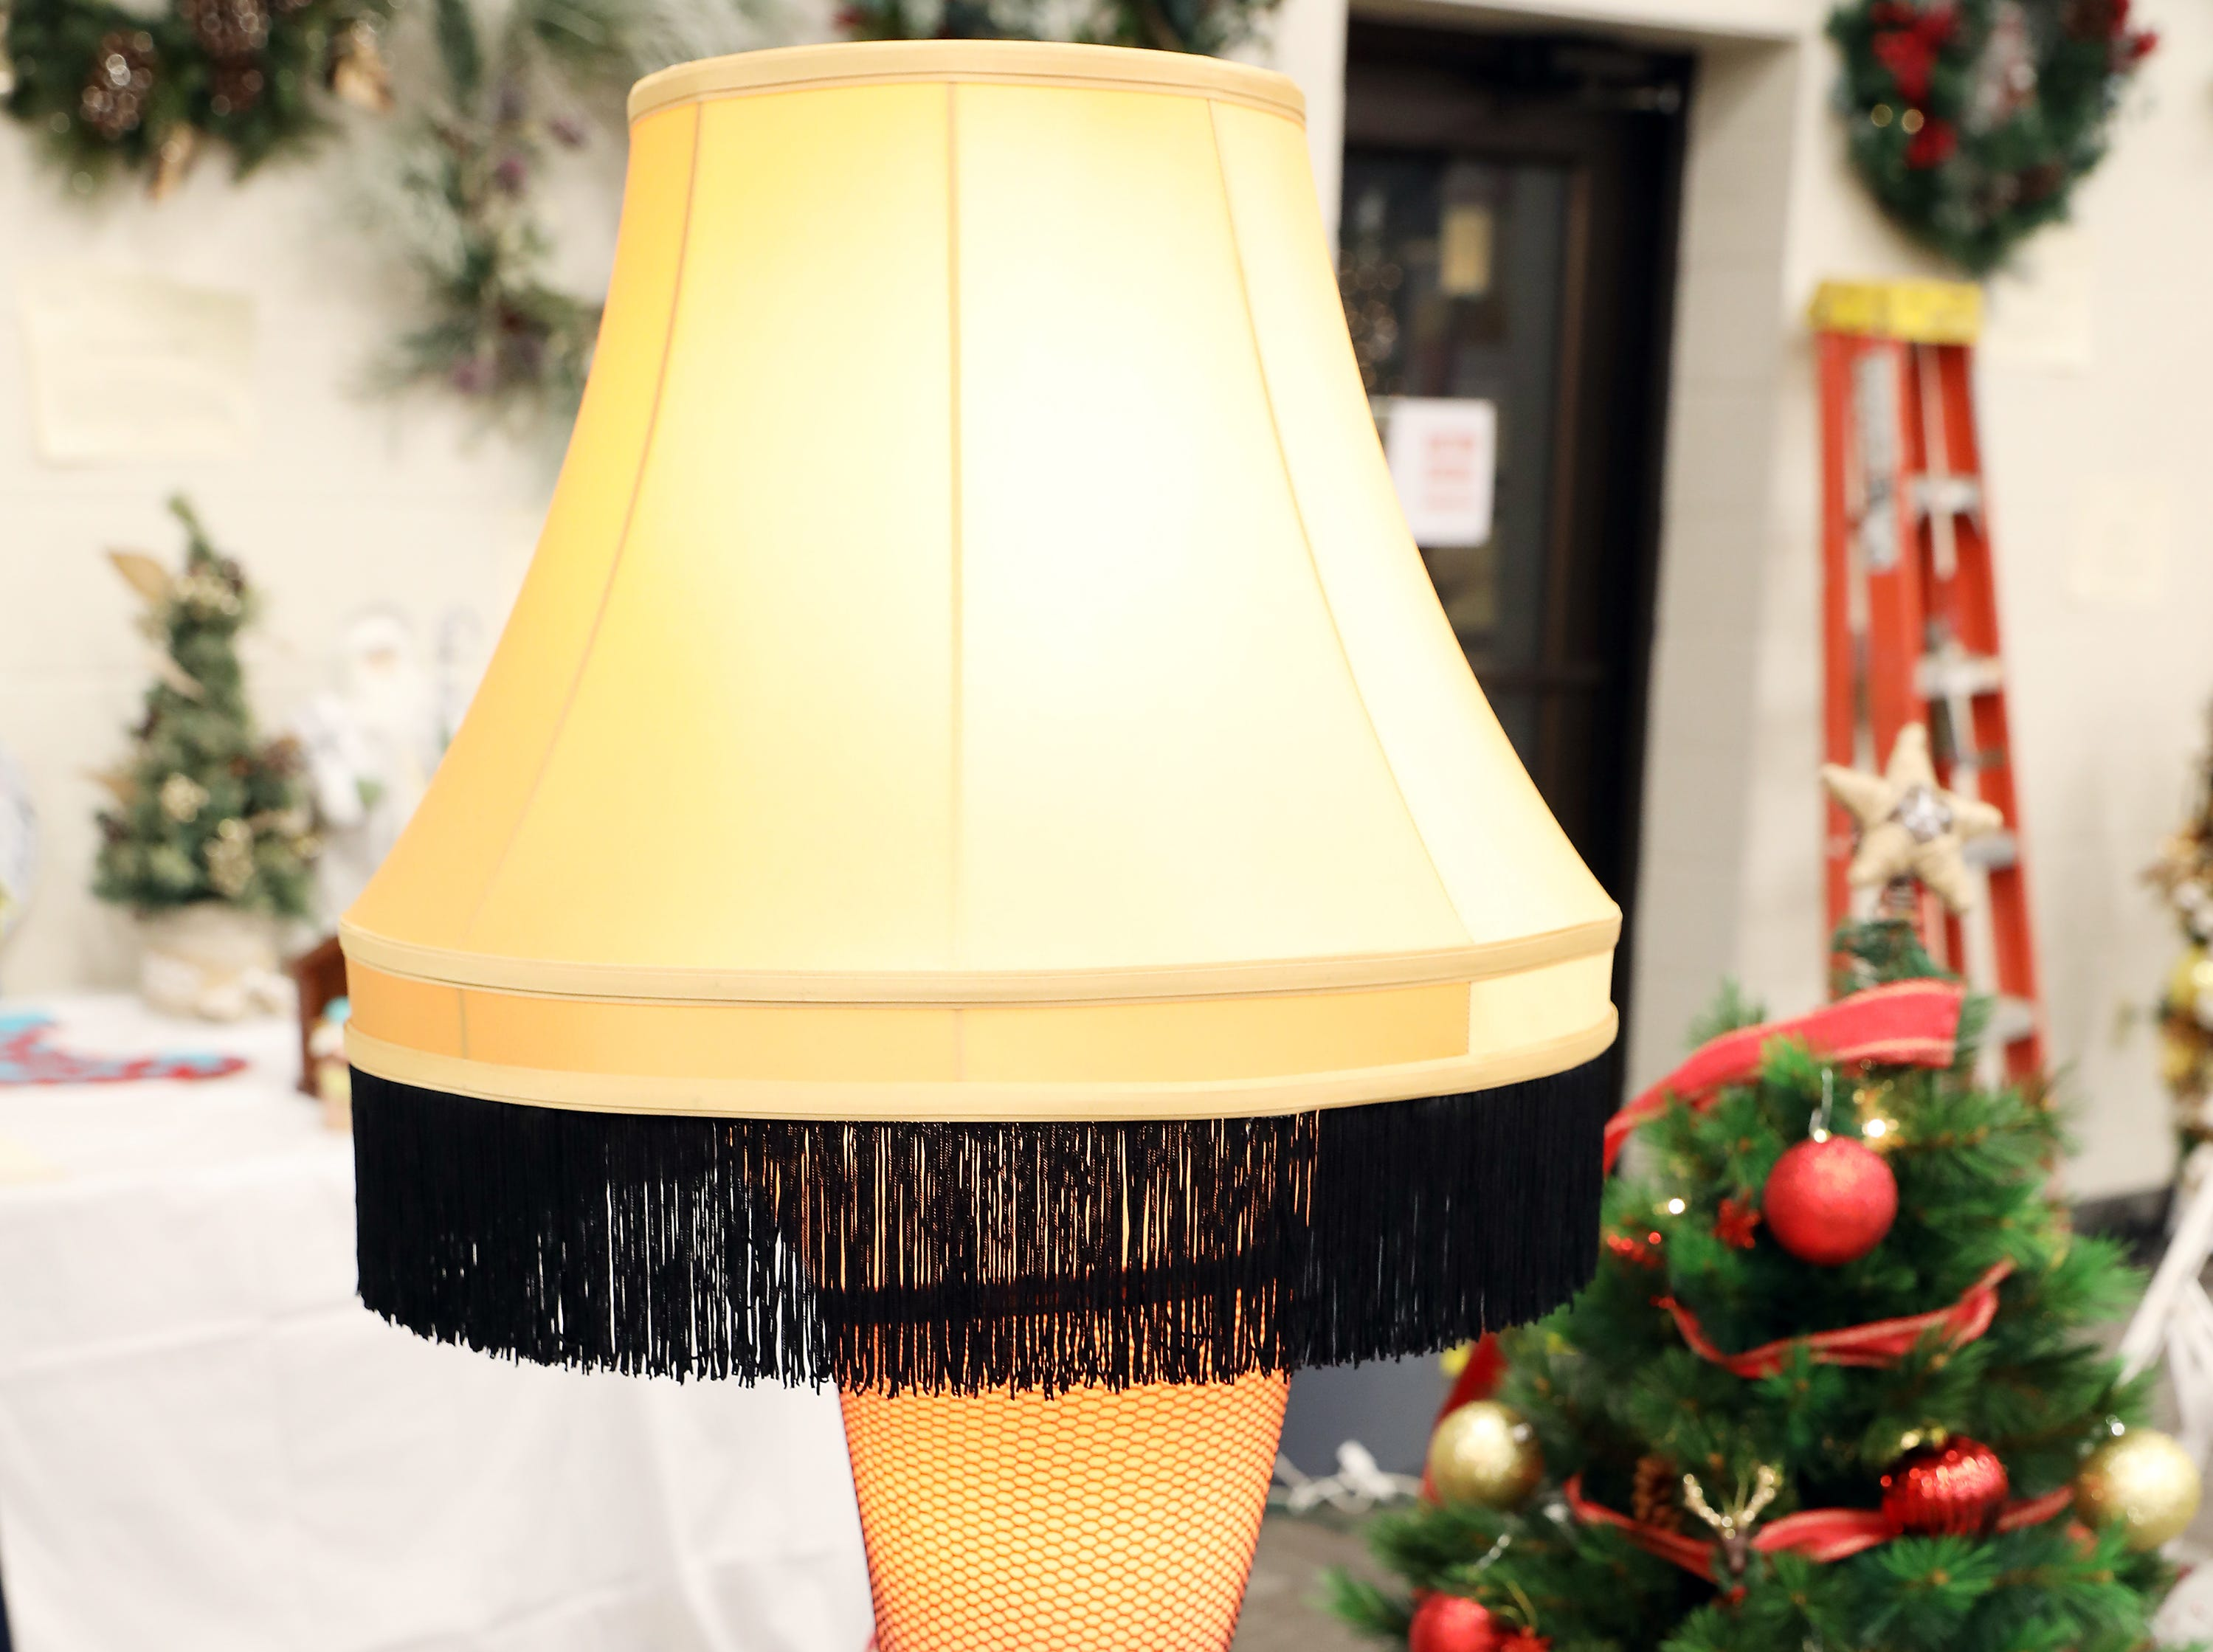 """1683:30 PMY City RealtyOtherA Christmas StoryA Christmas Story 50"""" deluxe full size leg lamp.A Christmas Story DVD, 2 adults, 2 child admission tickets for A Christmas Story House and Museum in Cleveland along with an original bar of A Christmas Story Lifebuoy Soap."""